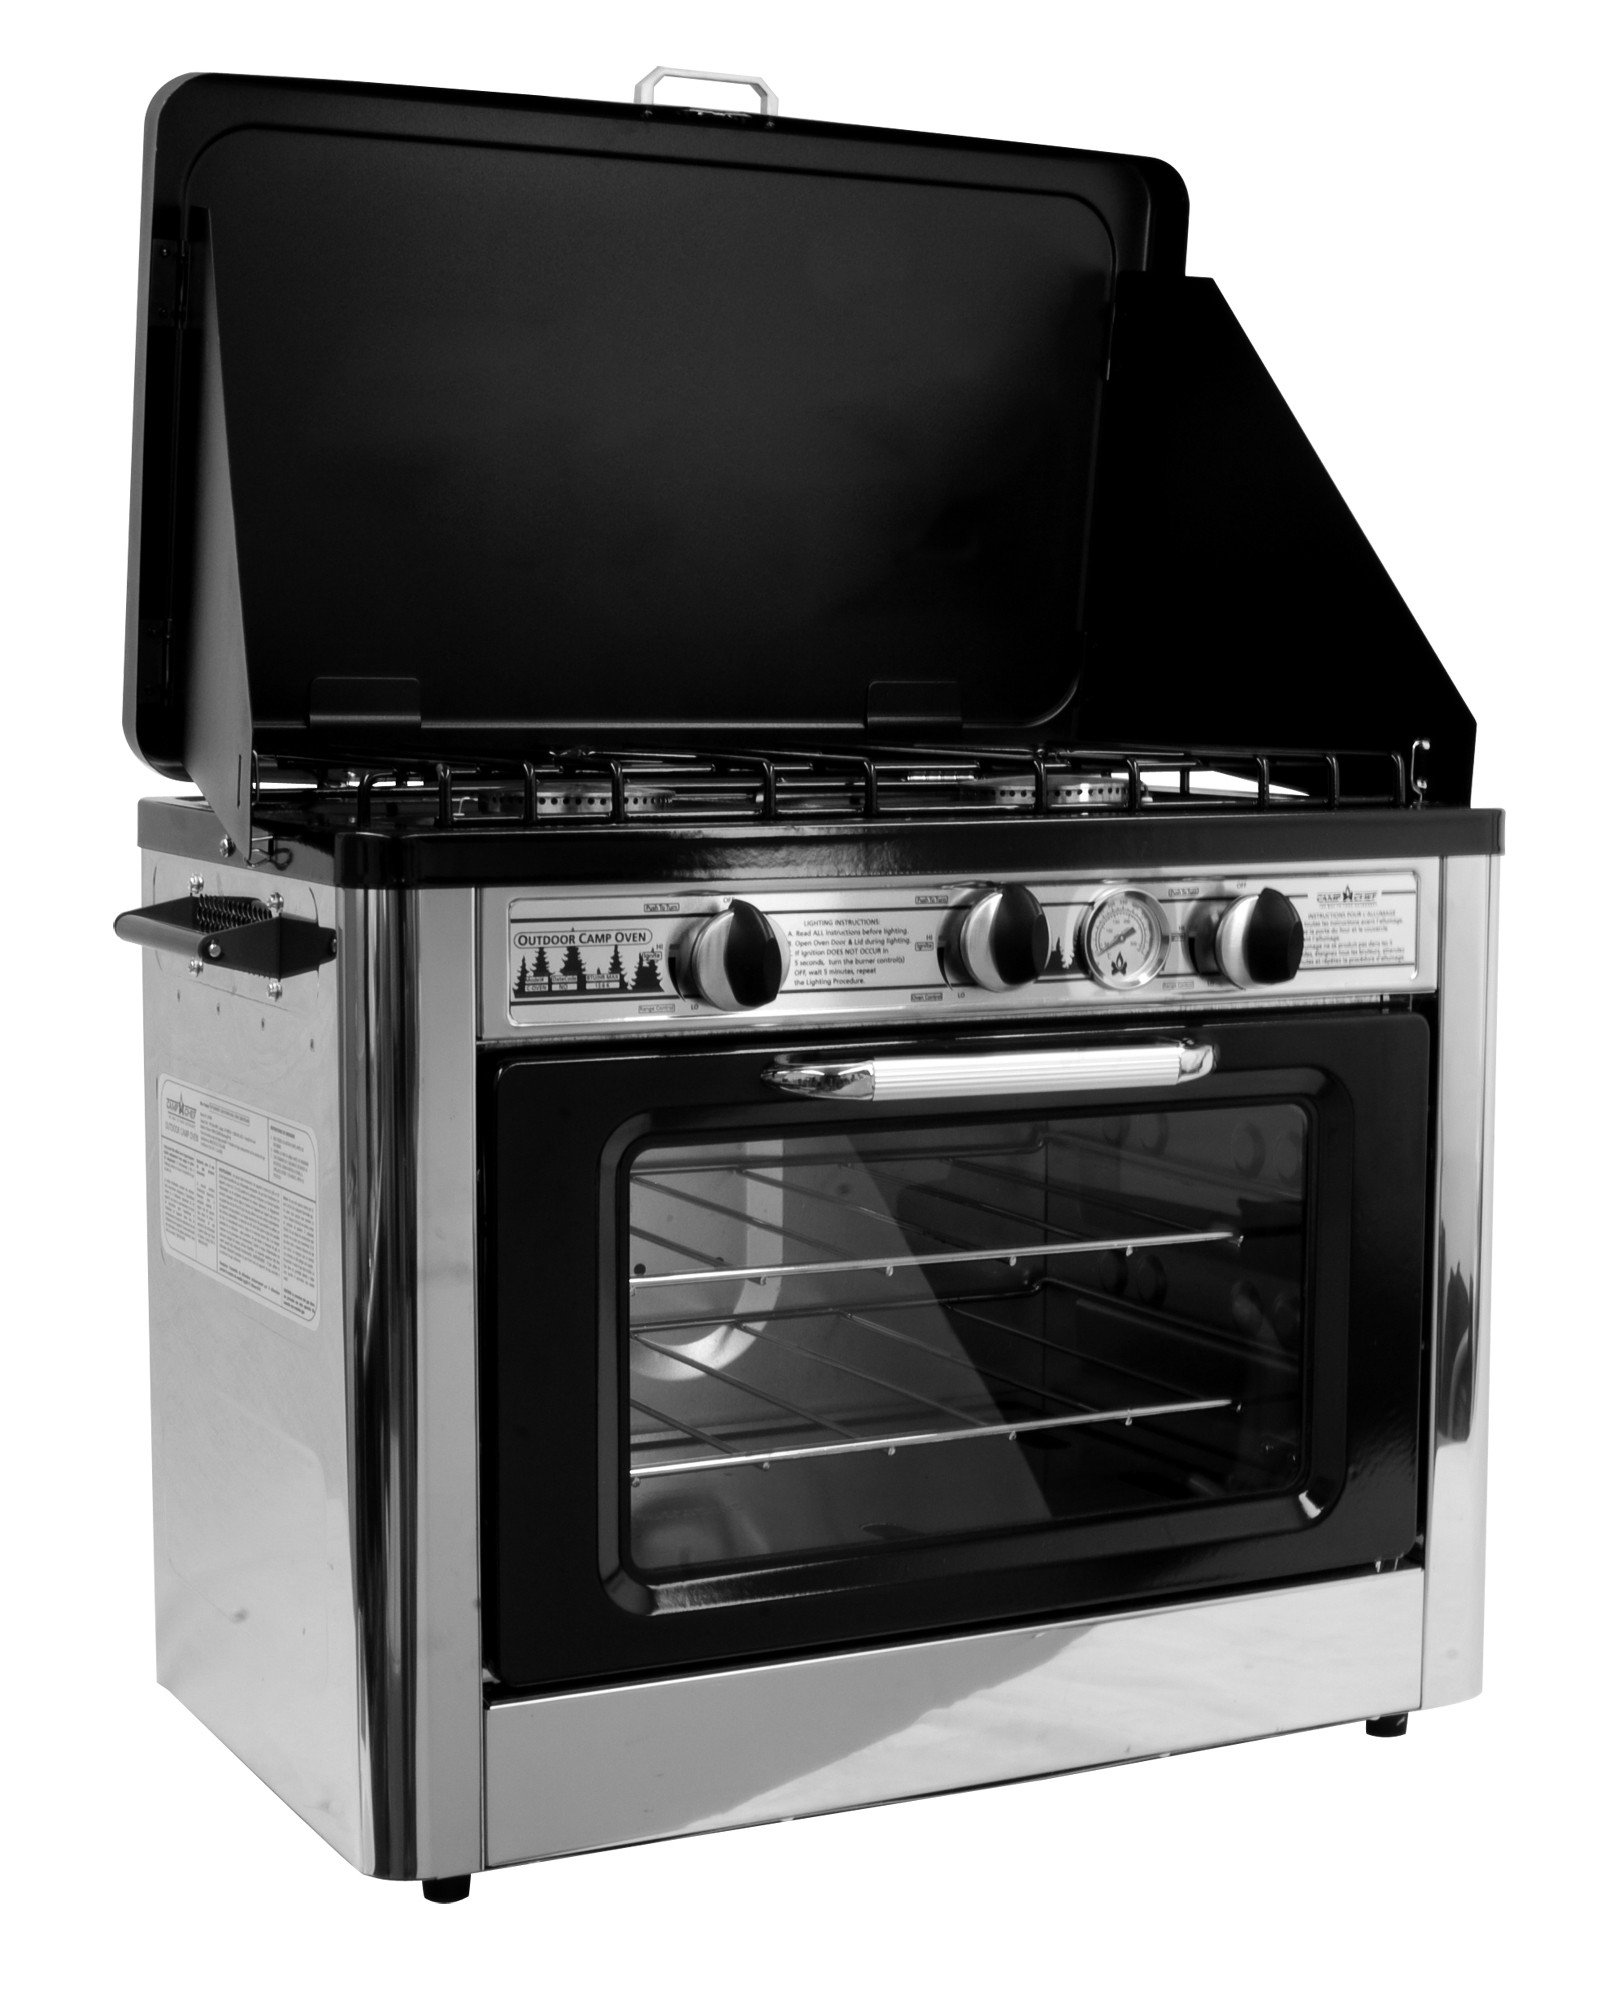 Camp Chef Outdoor Camp Oven by Camp Chef